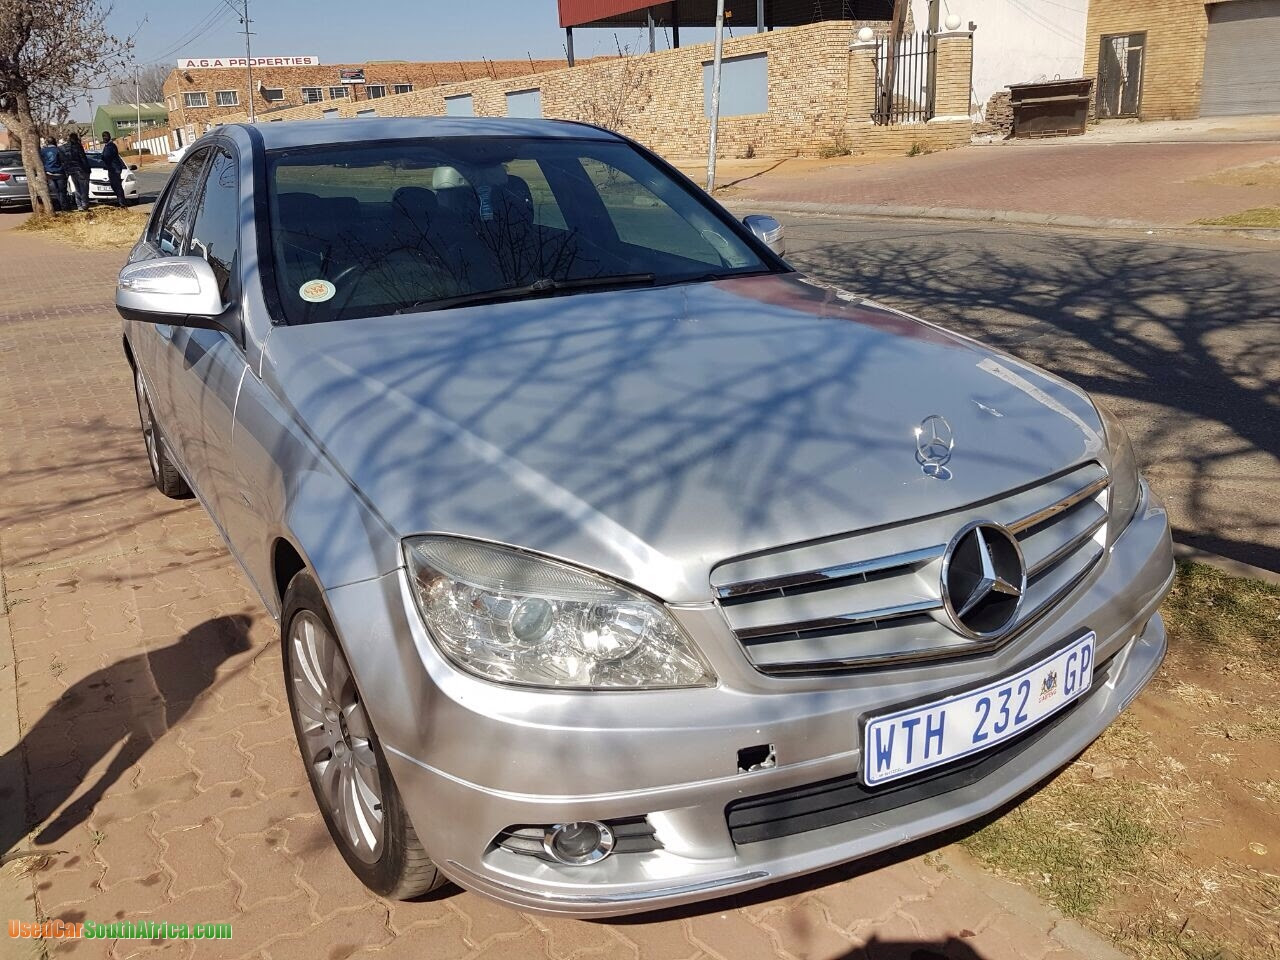 2009 Mercedes Benz C200 used car for sale in Johannesburg ...